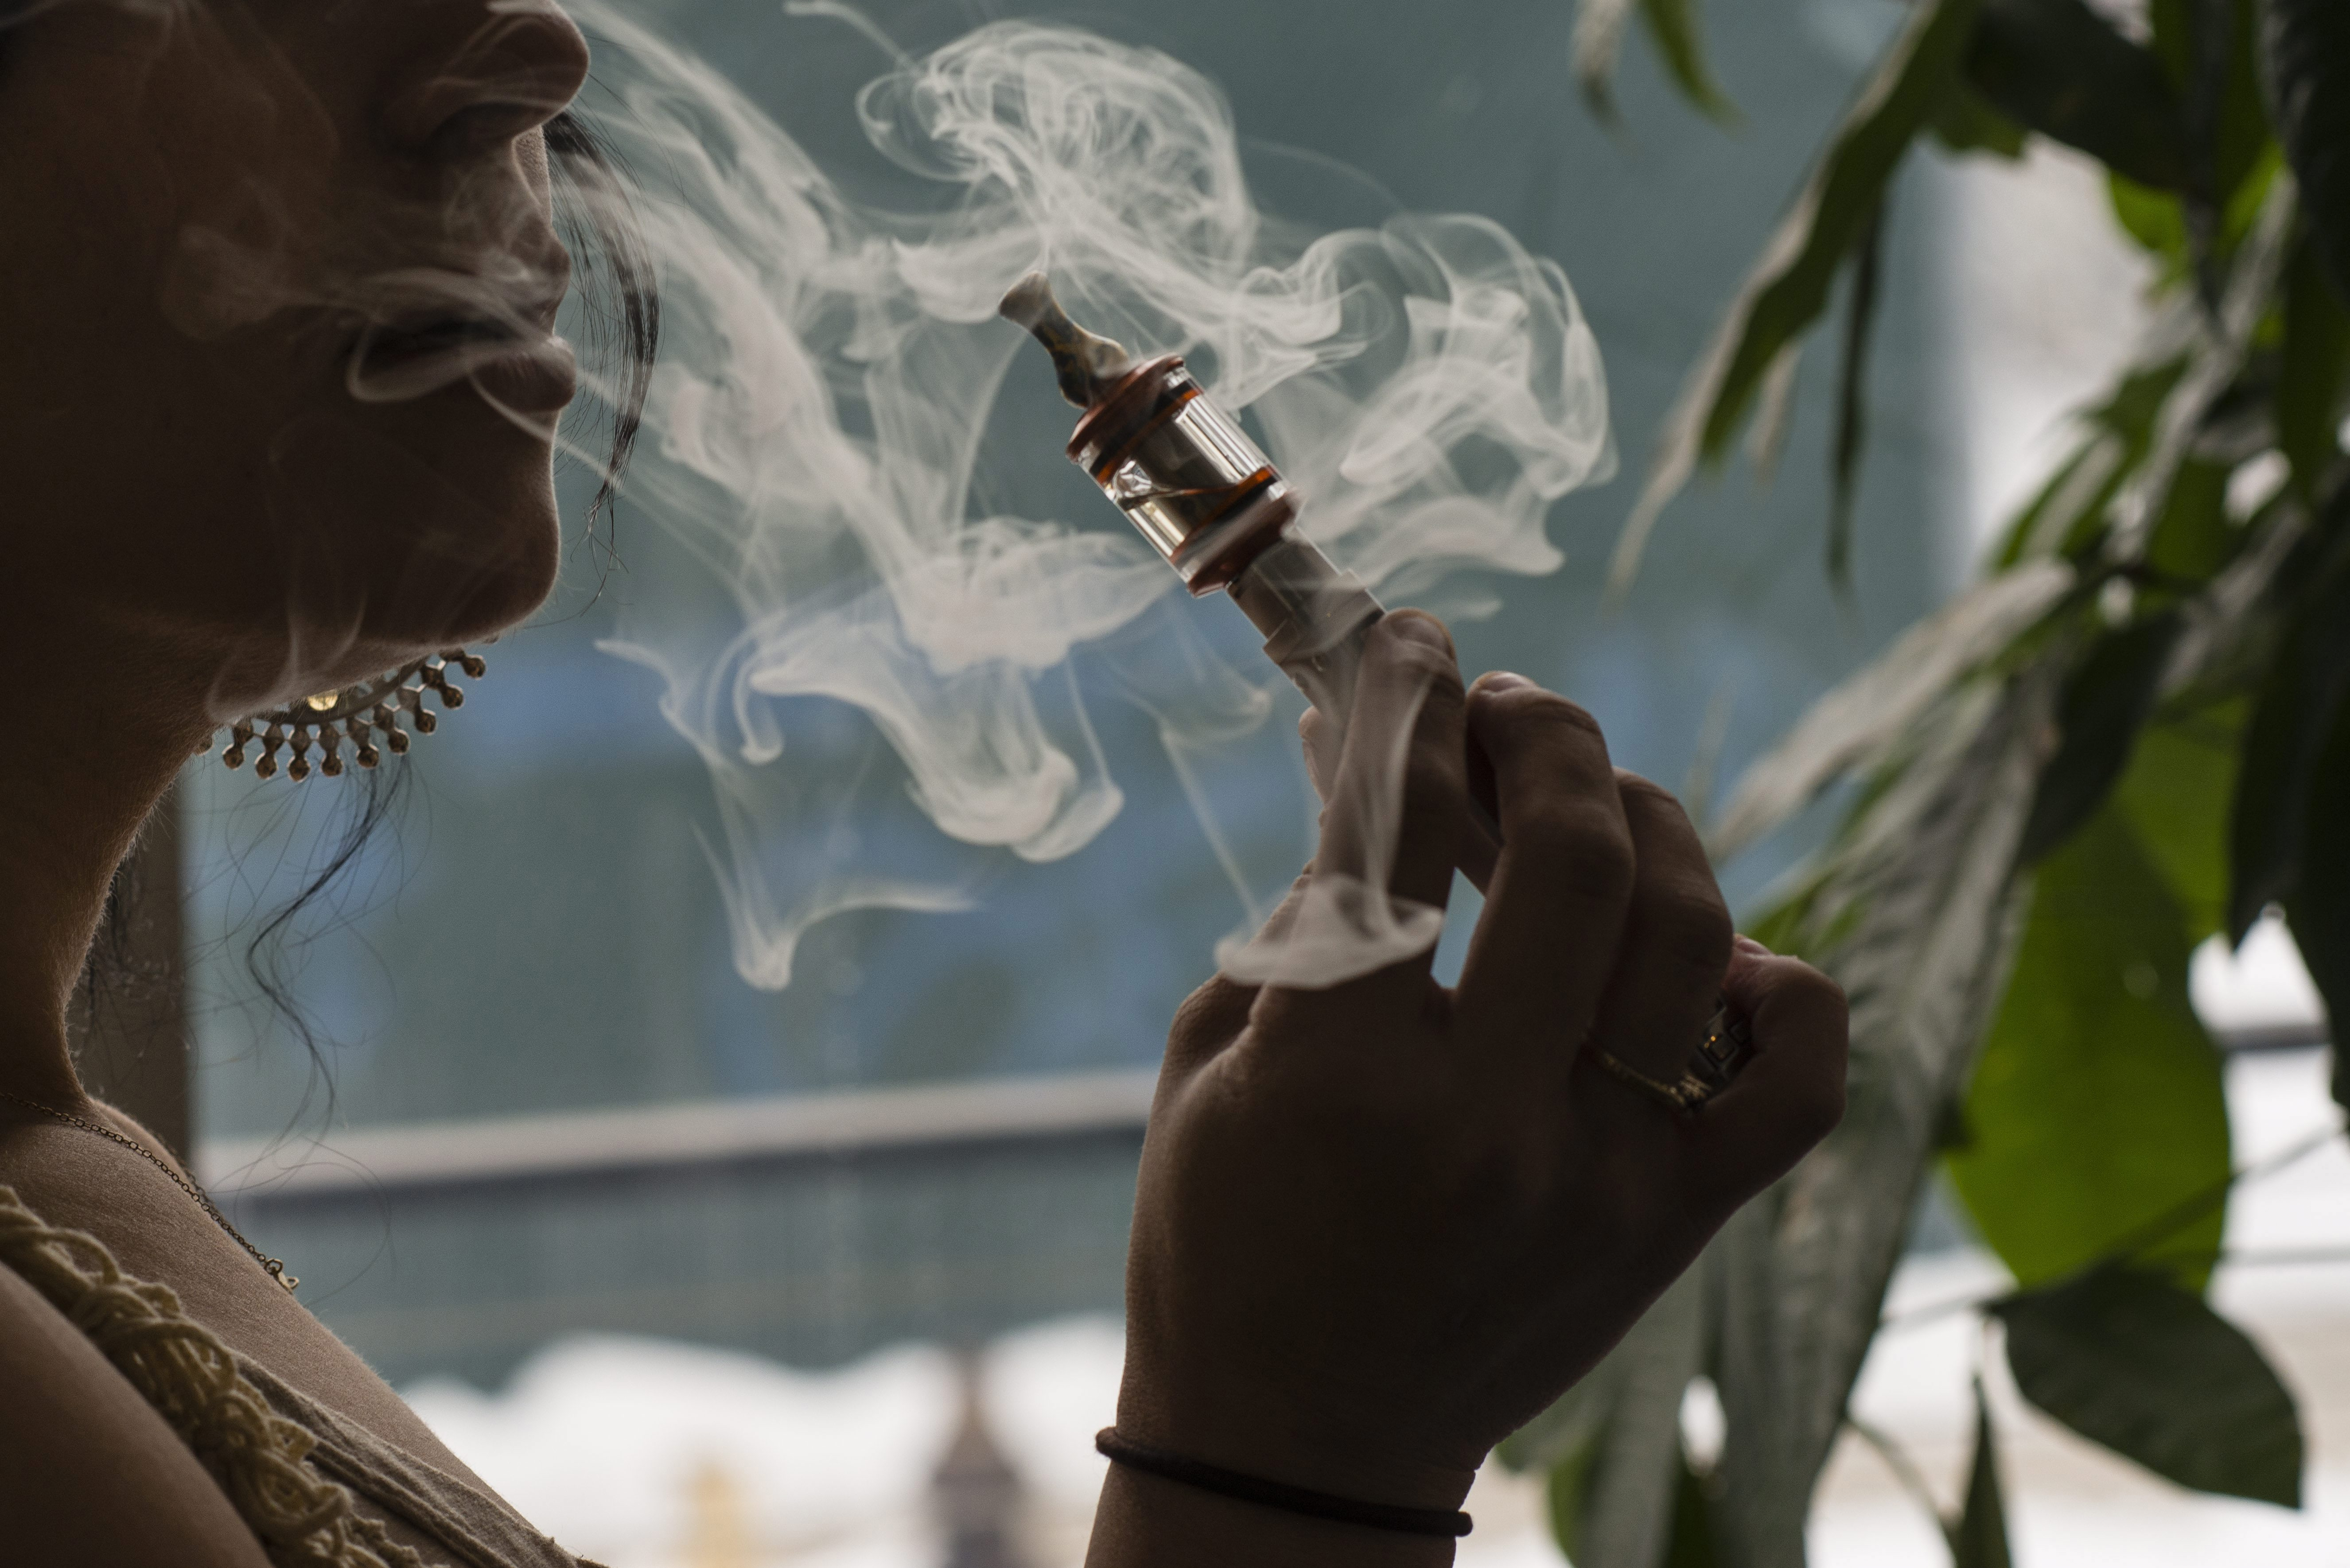 The state is considering regulating e-cigarettes like other tobacco products.(Bloomberg photo)